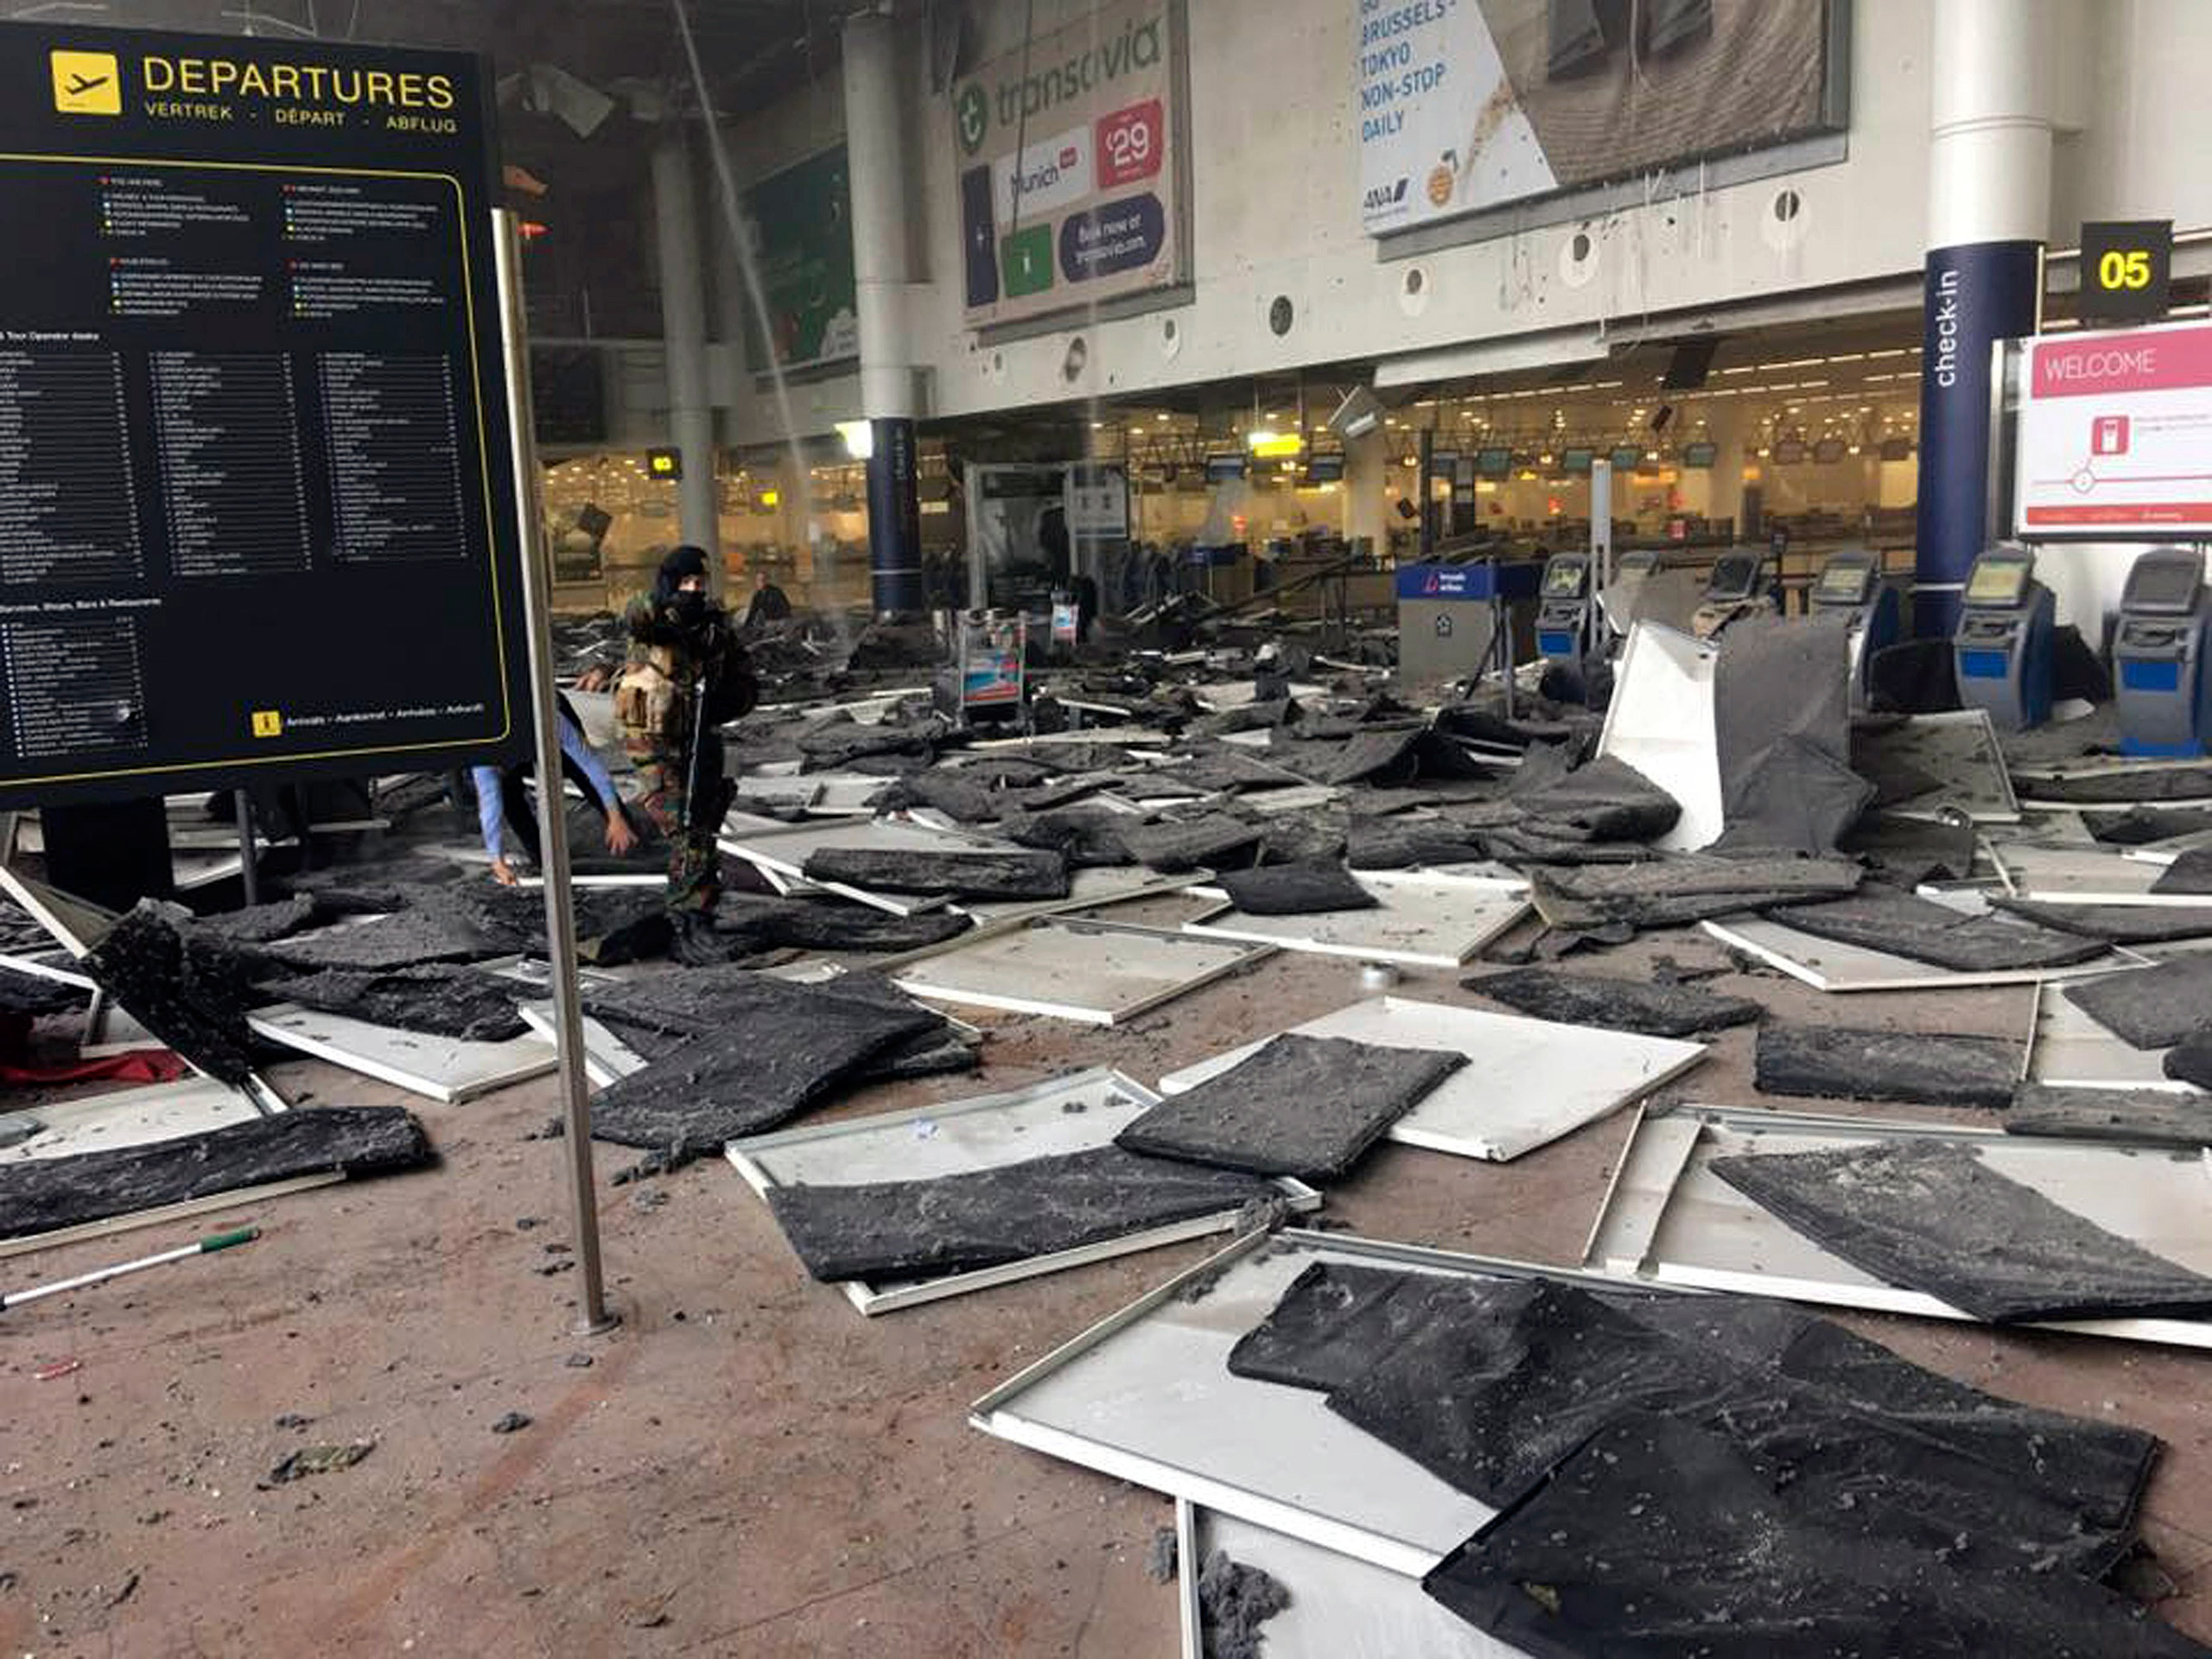 A soldier is seen at Zaventem Airport after a blast occurred in Brussels, Belgium, March 22, 2016.